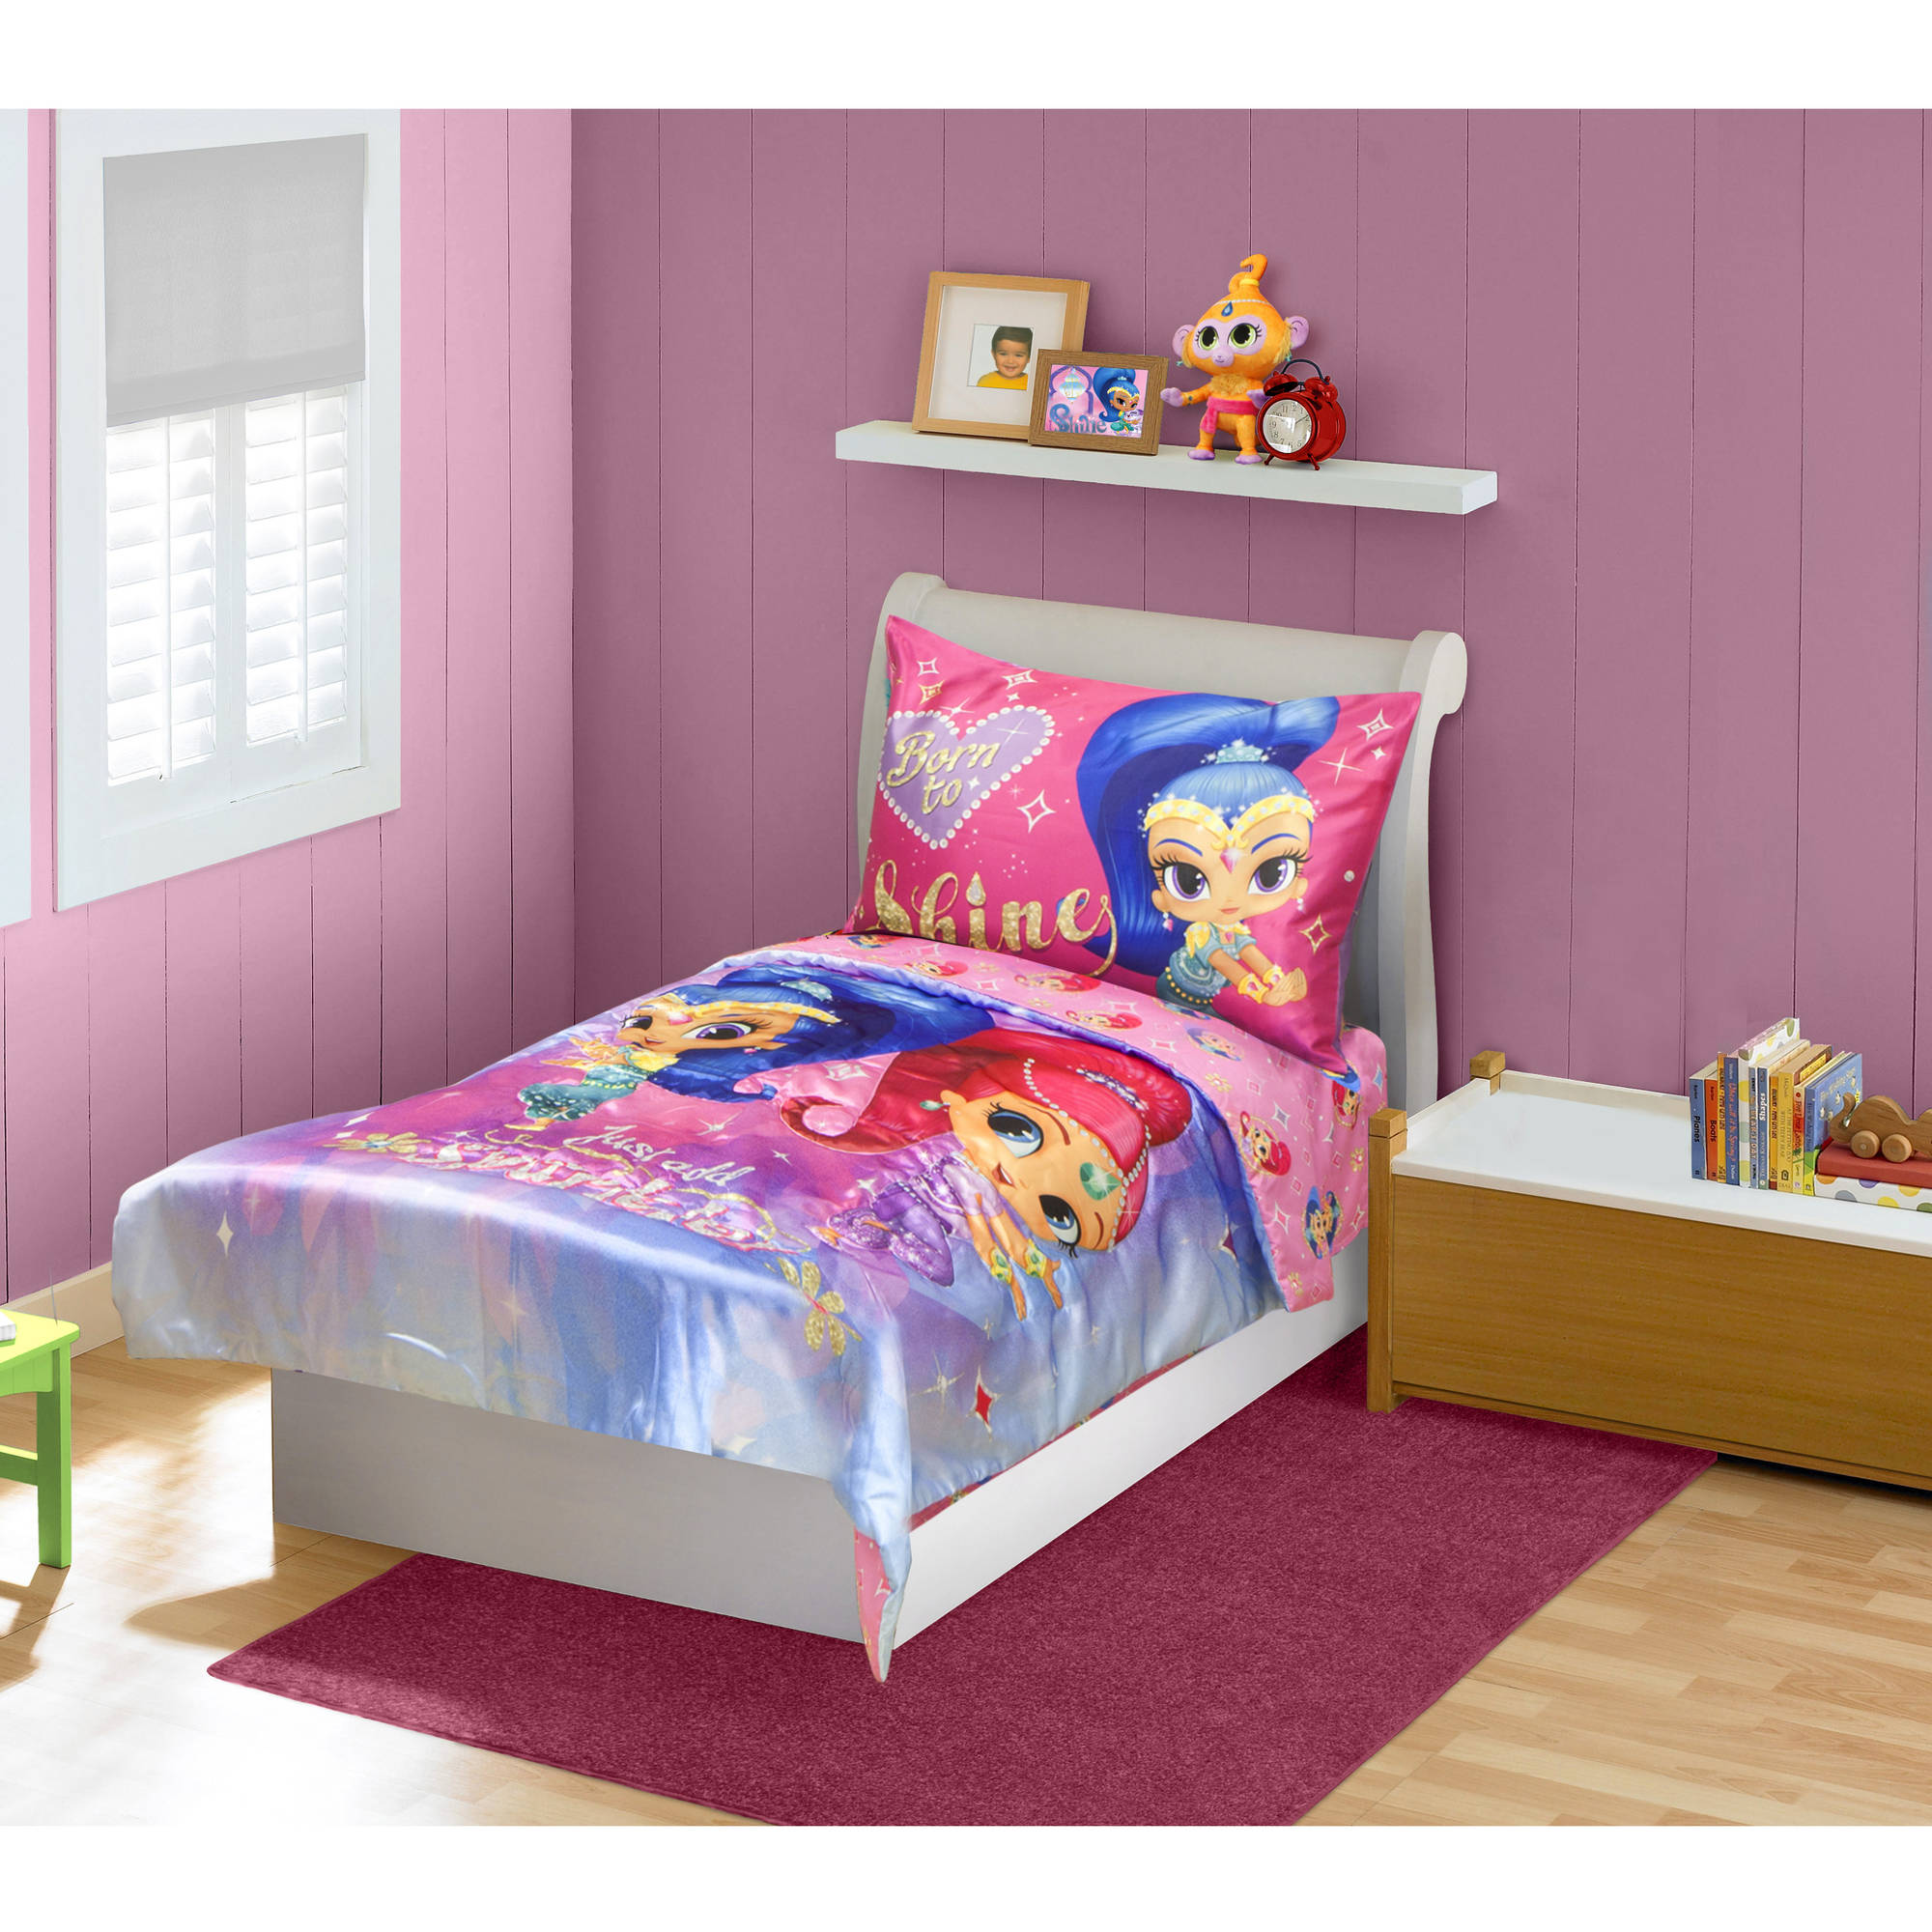 Shimmer & Shine 4-Piece Toddler Bedding Set